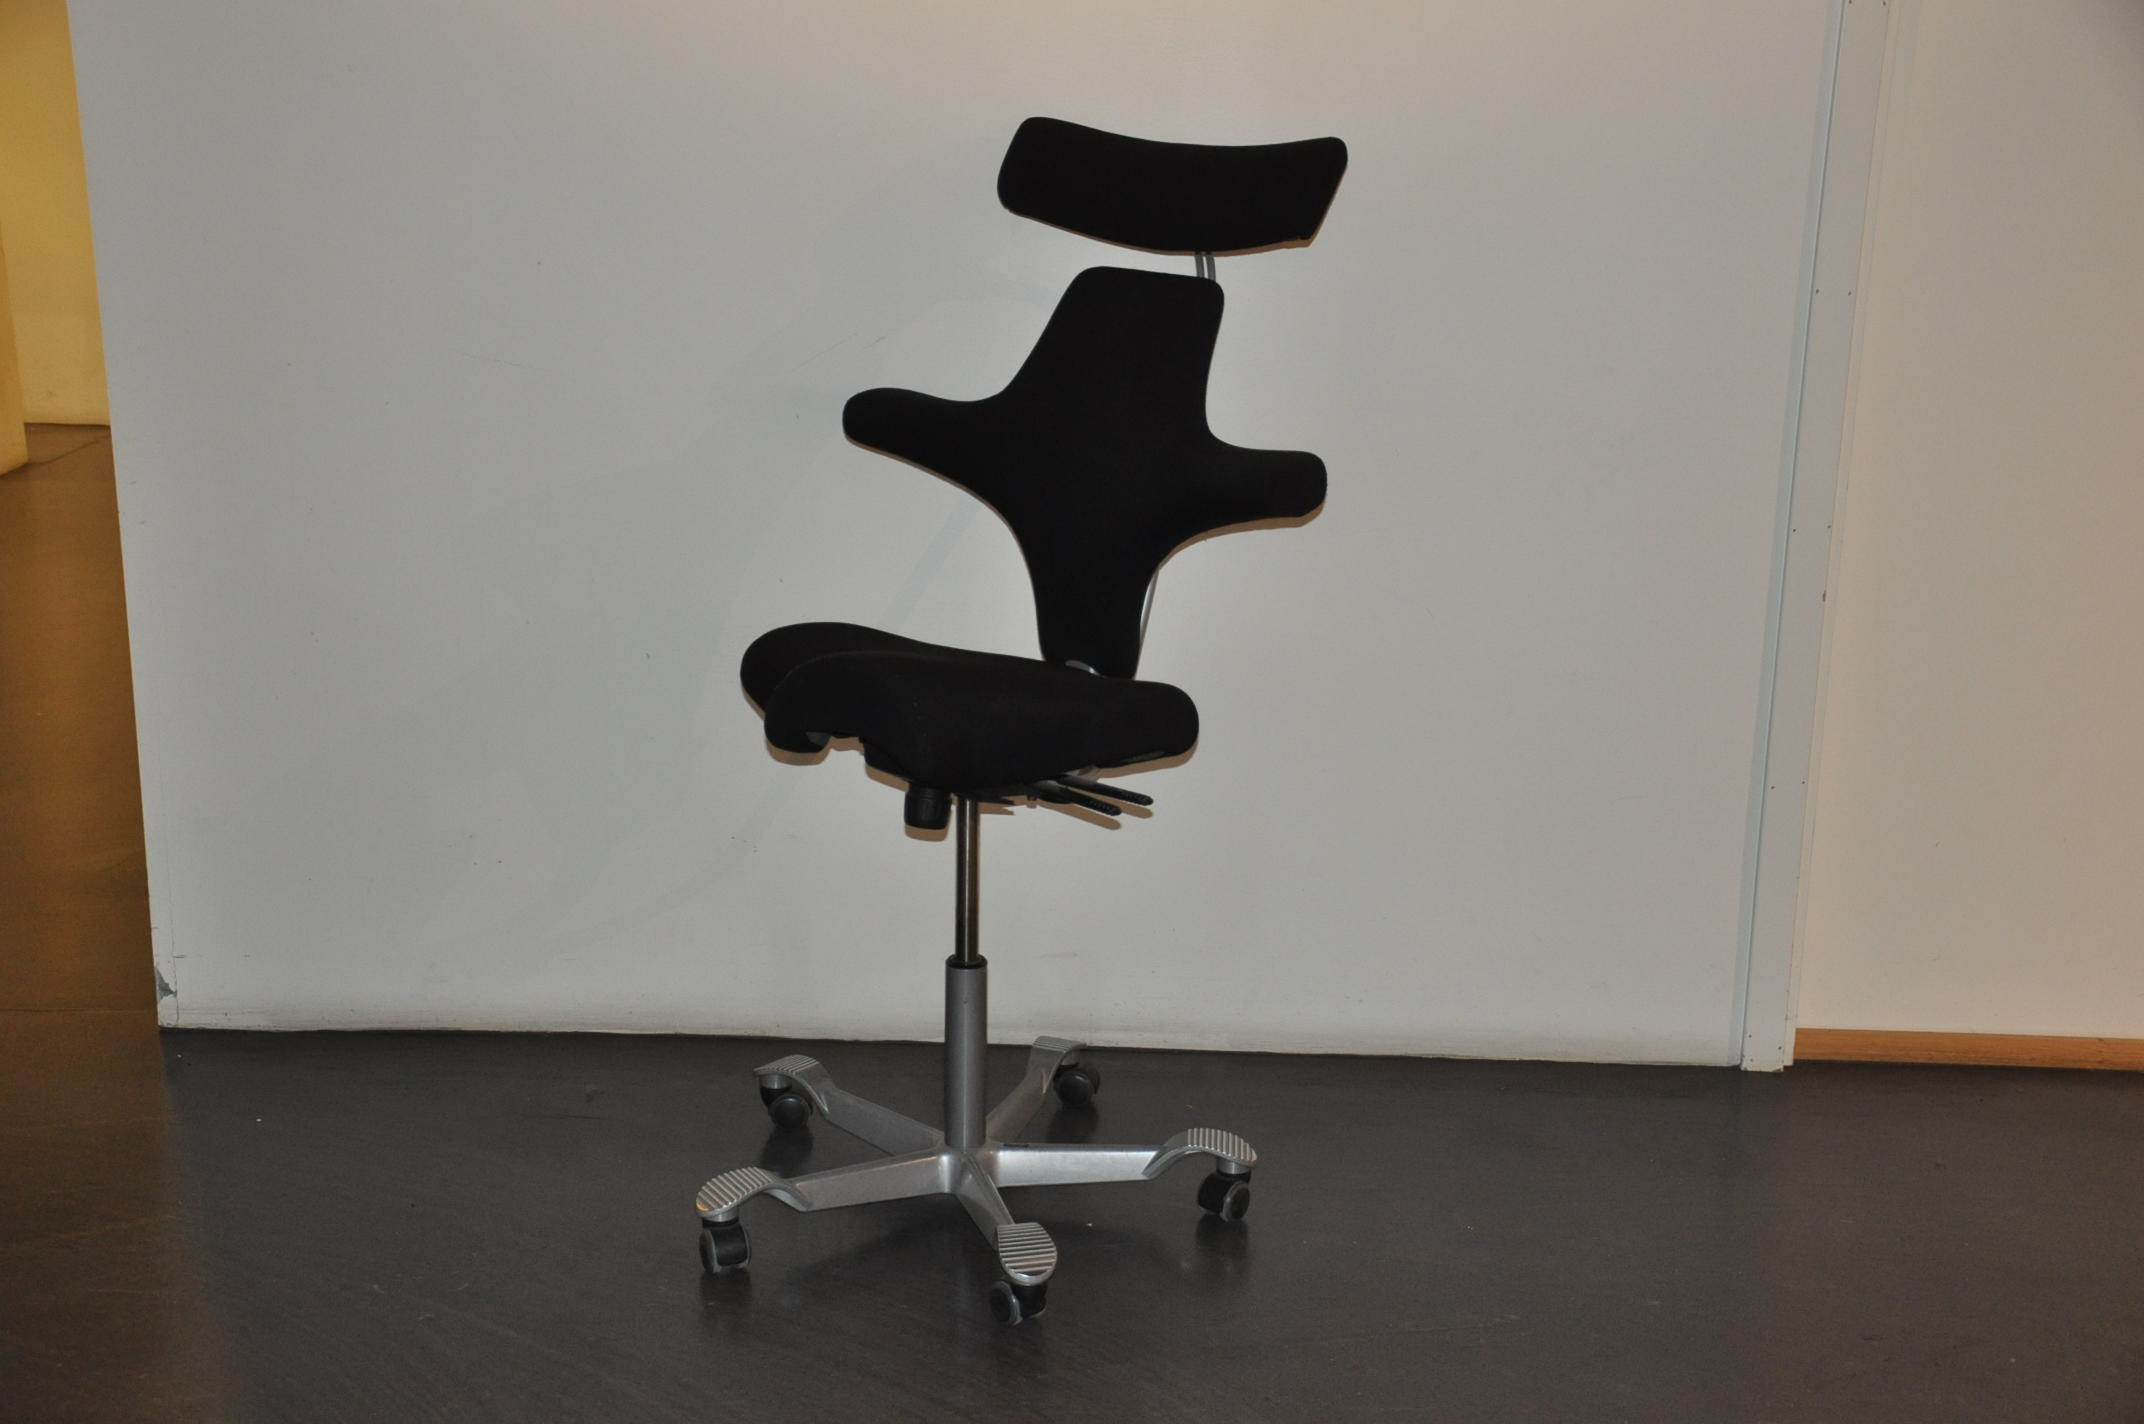 Office Chair HÅg Capisco 8107 With Headrest Black Allfor Se Used Is The New